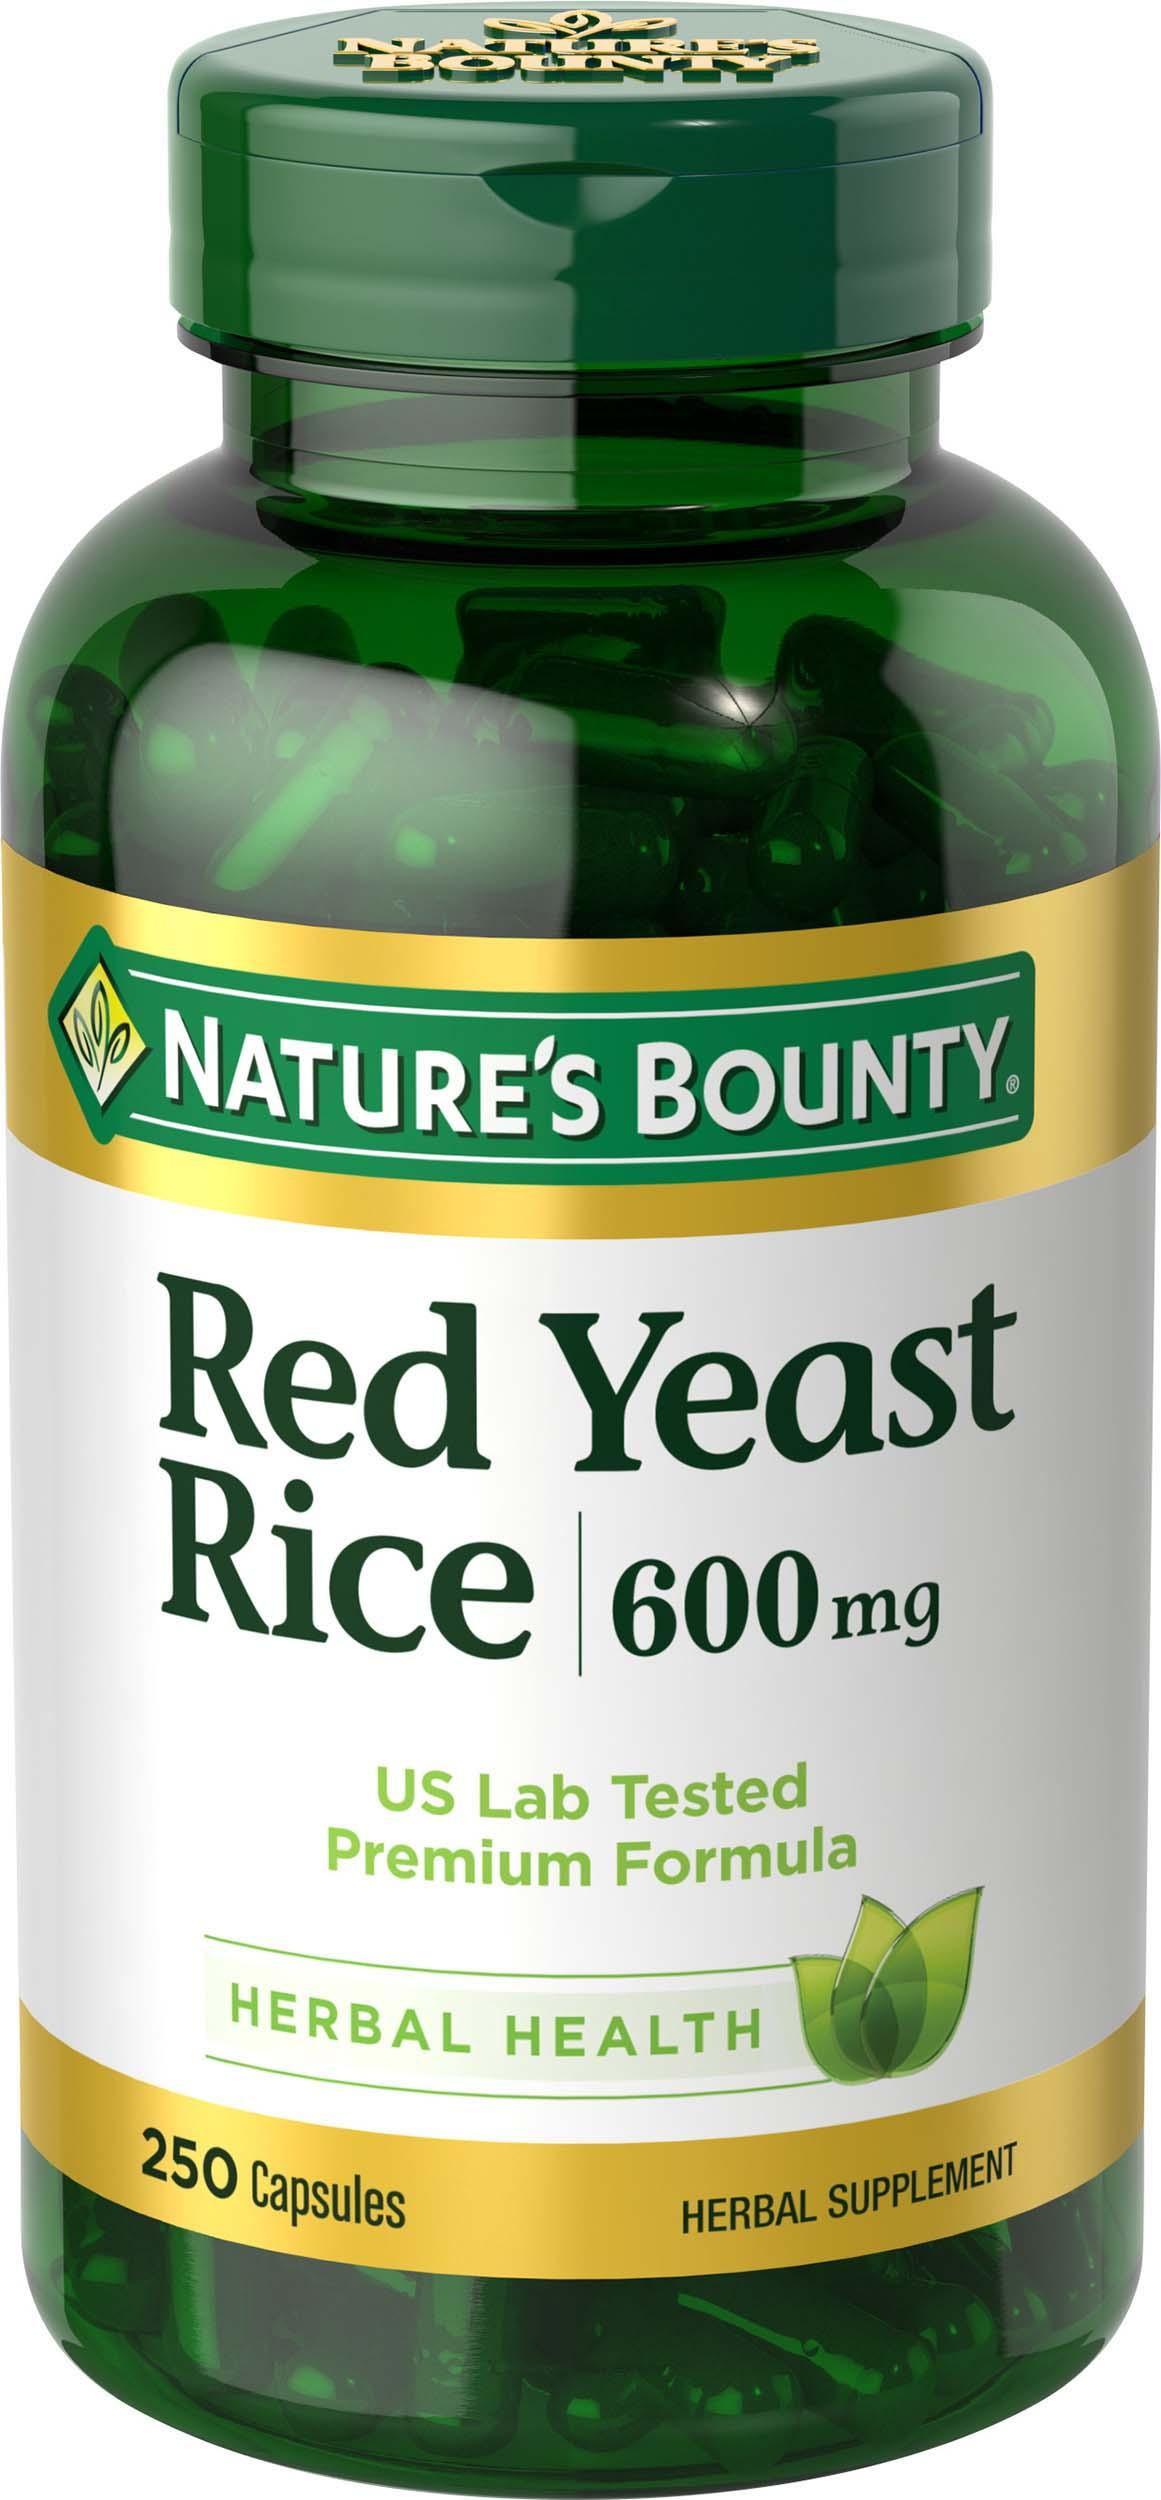 Amazon.com: Nature's Bounty Red Yeast Rice 600 mg, 250